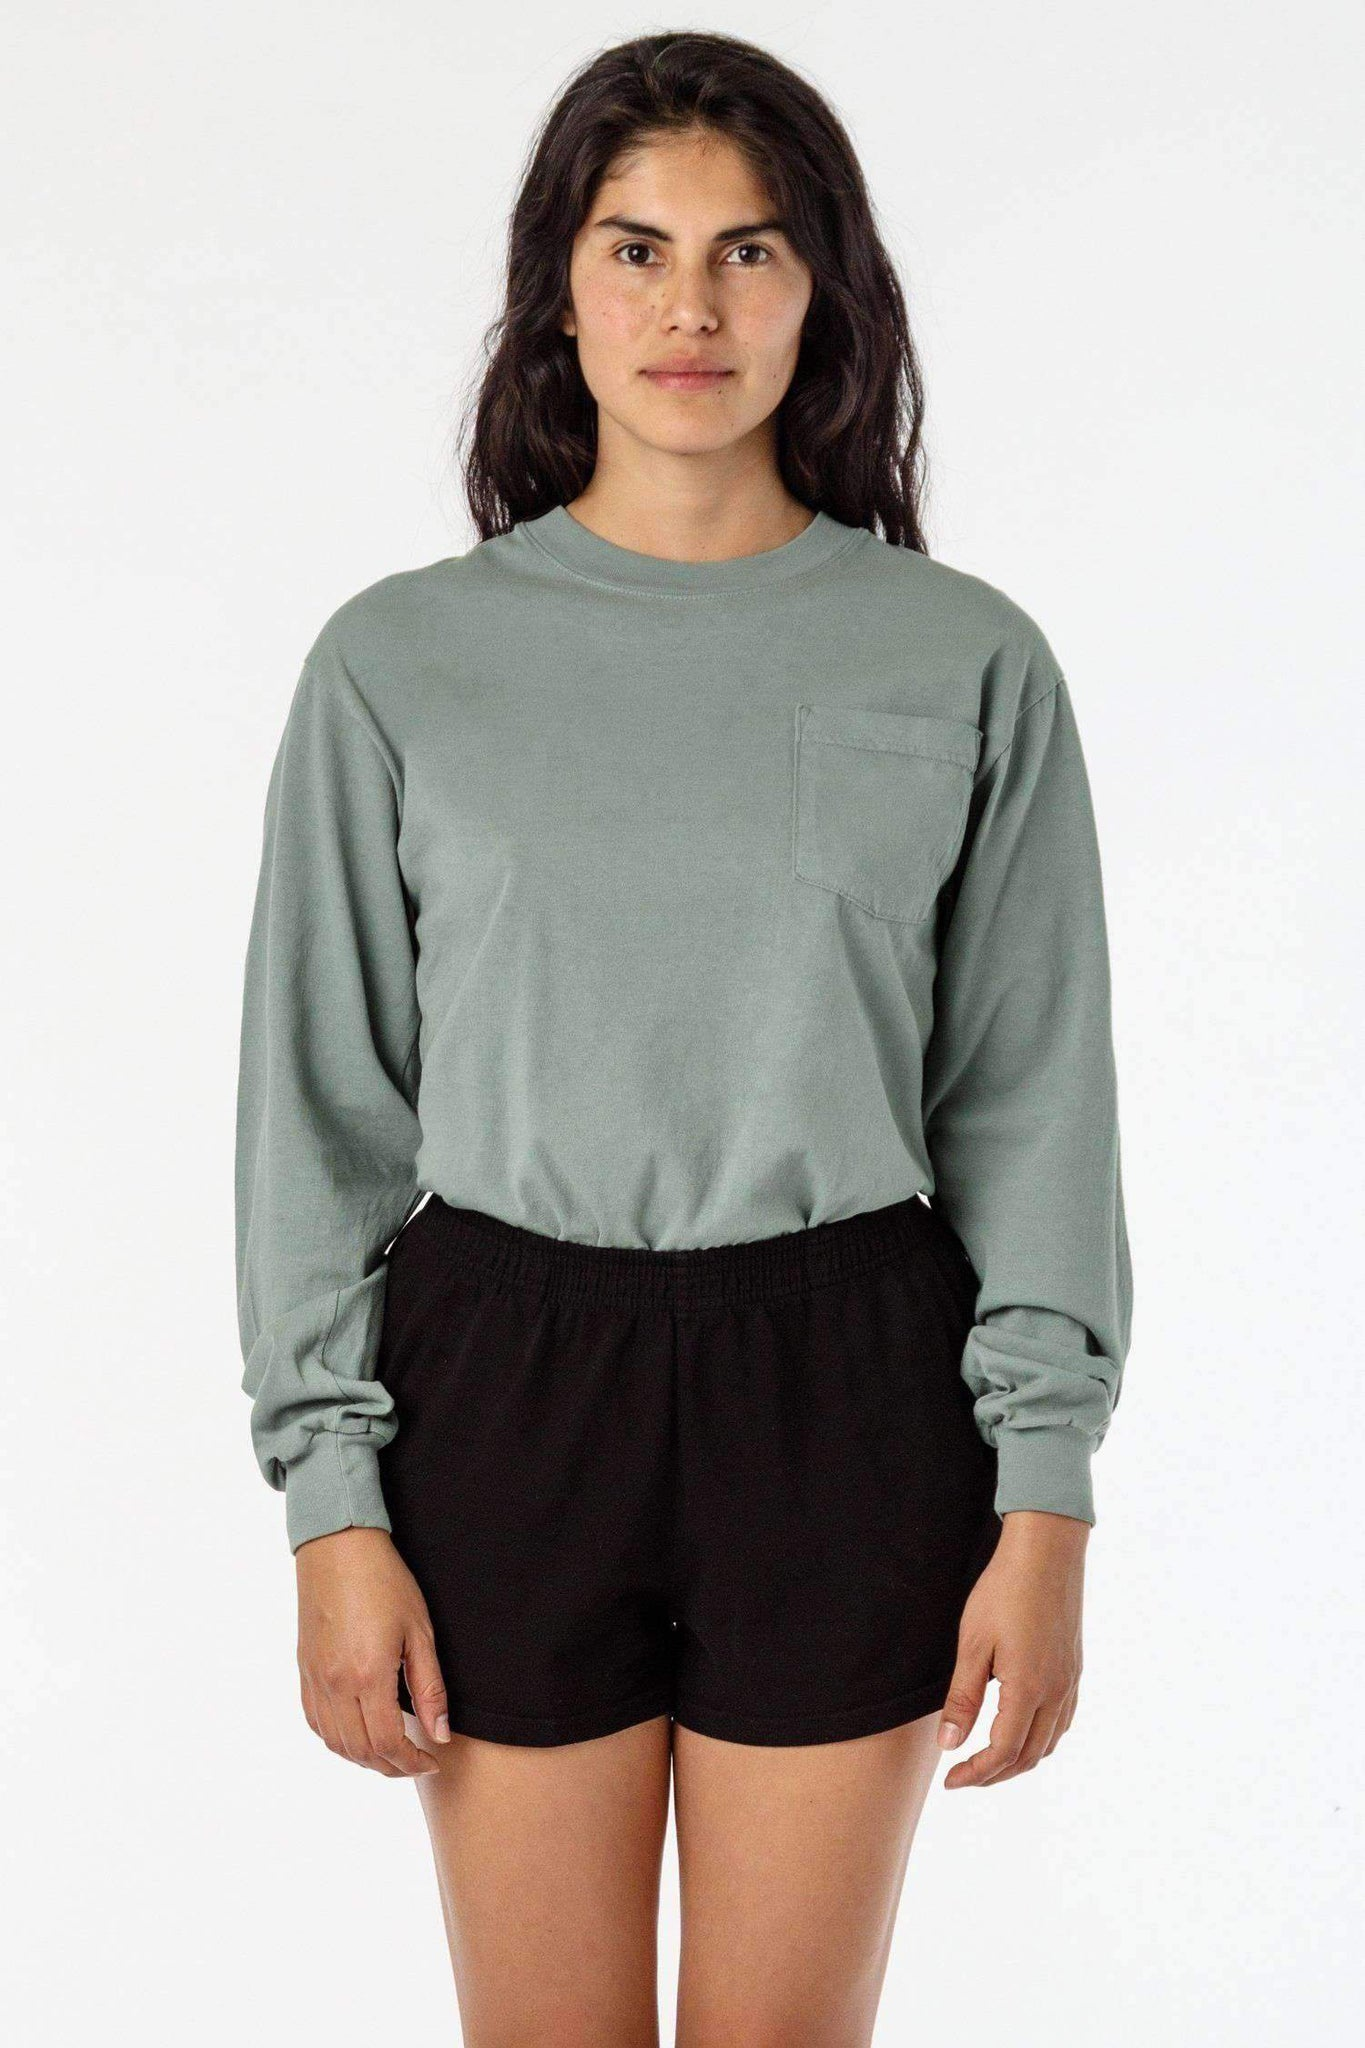 1810GD Unisex - Long Sleeve Garment Dye Pocket T-Shirt T-Shirt Los Angeles Apparel Atlantic Green XS